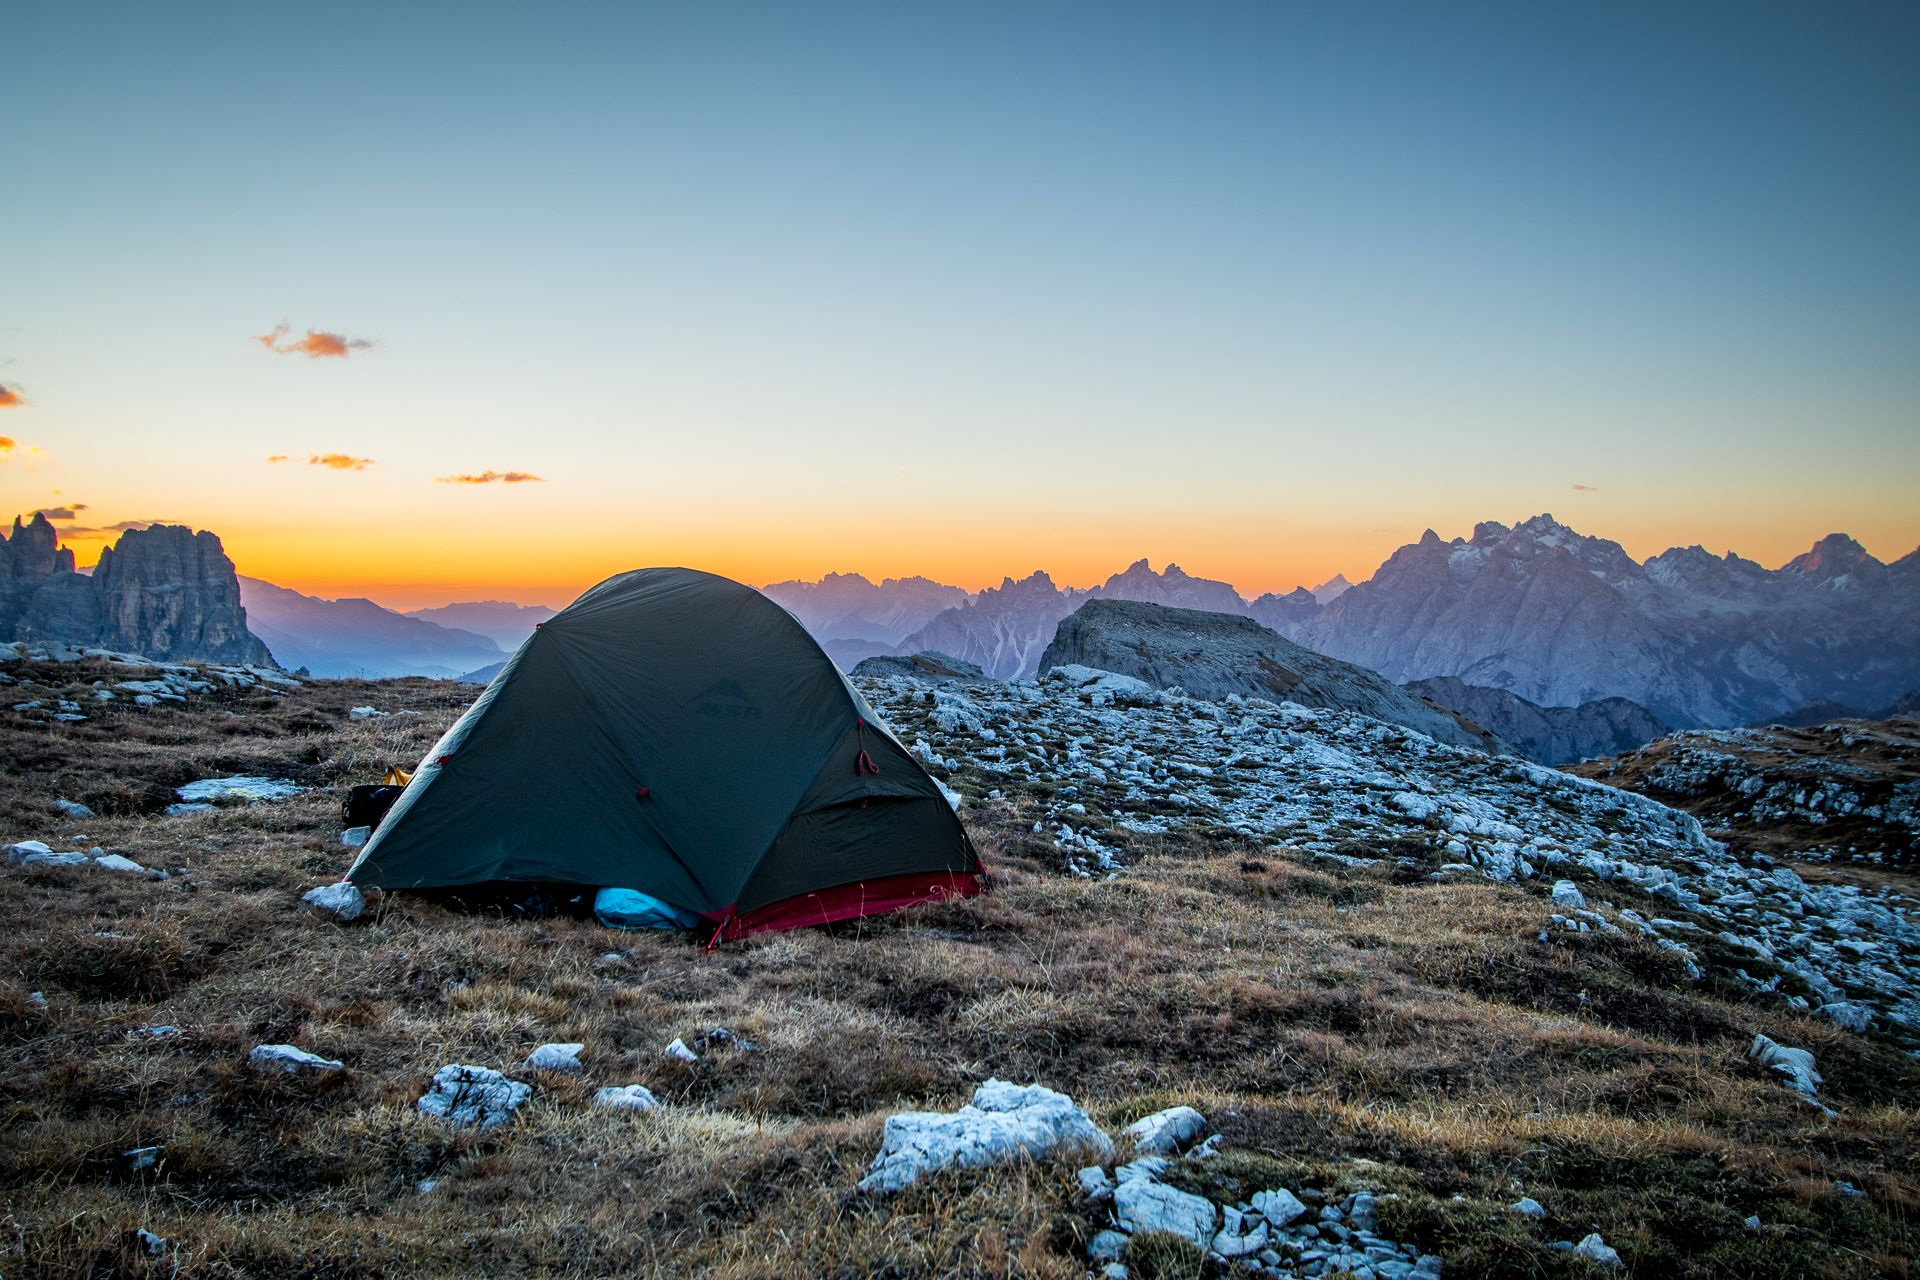 Cheesy Picture Of Our Tent With Images Dolomites Good Morning